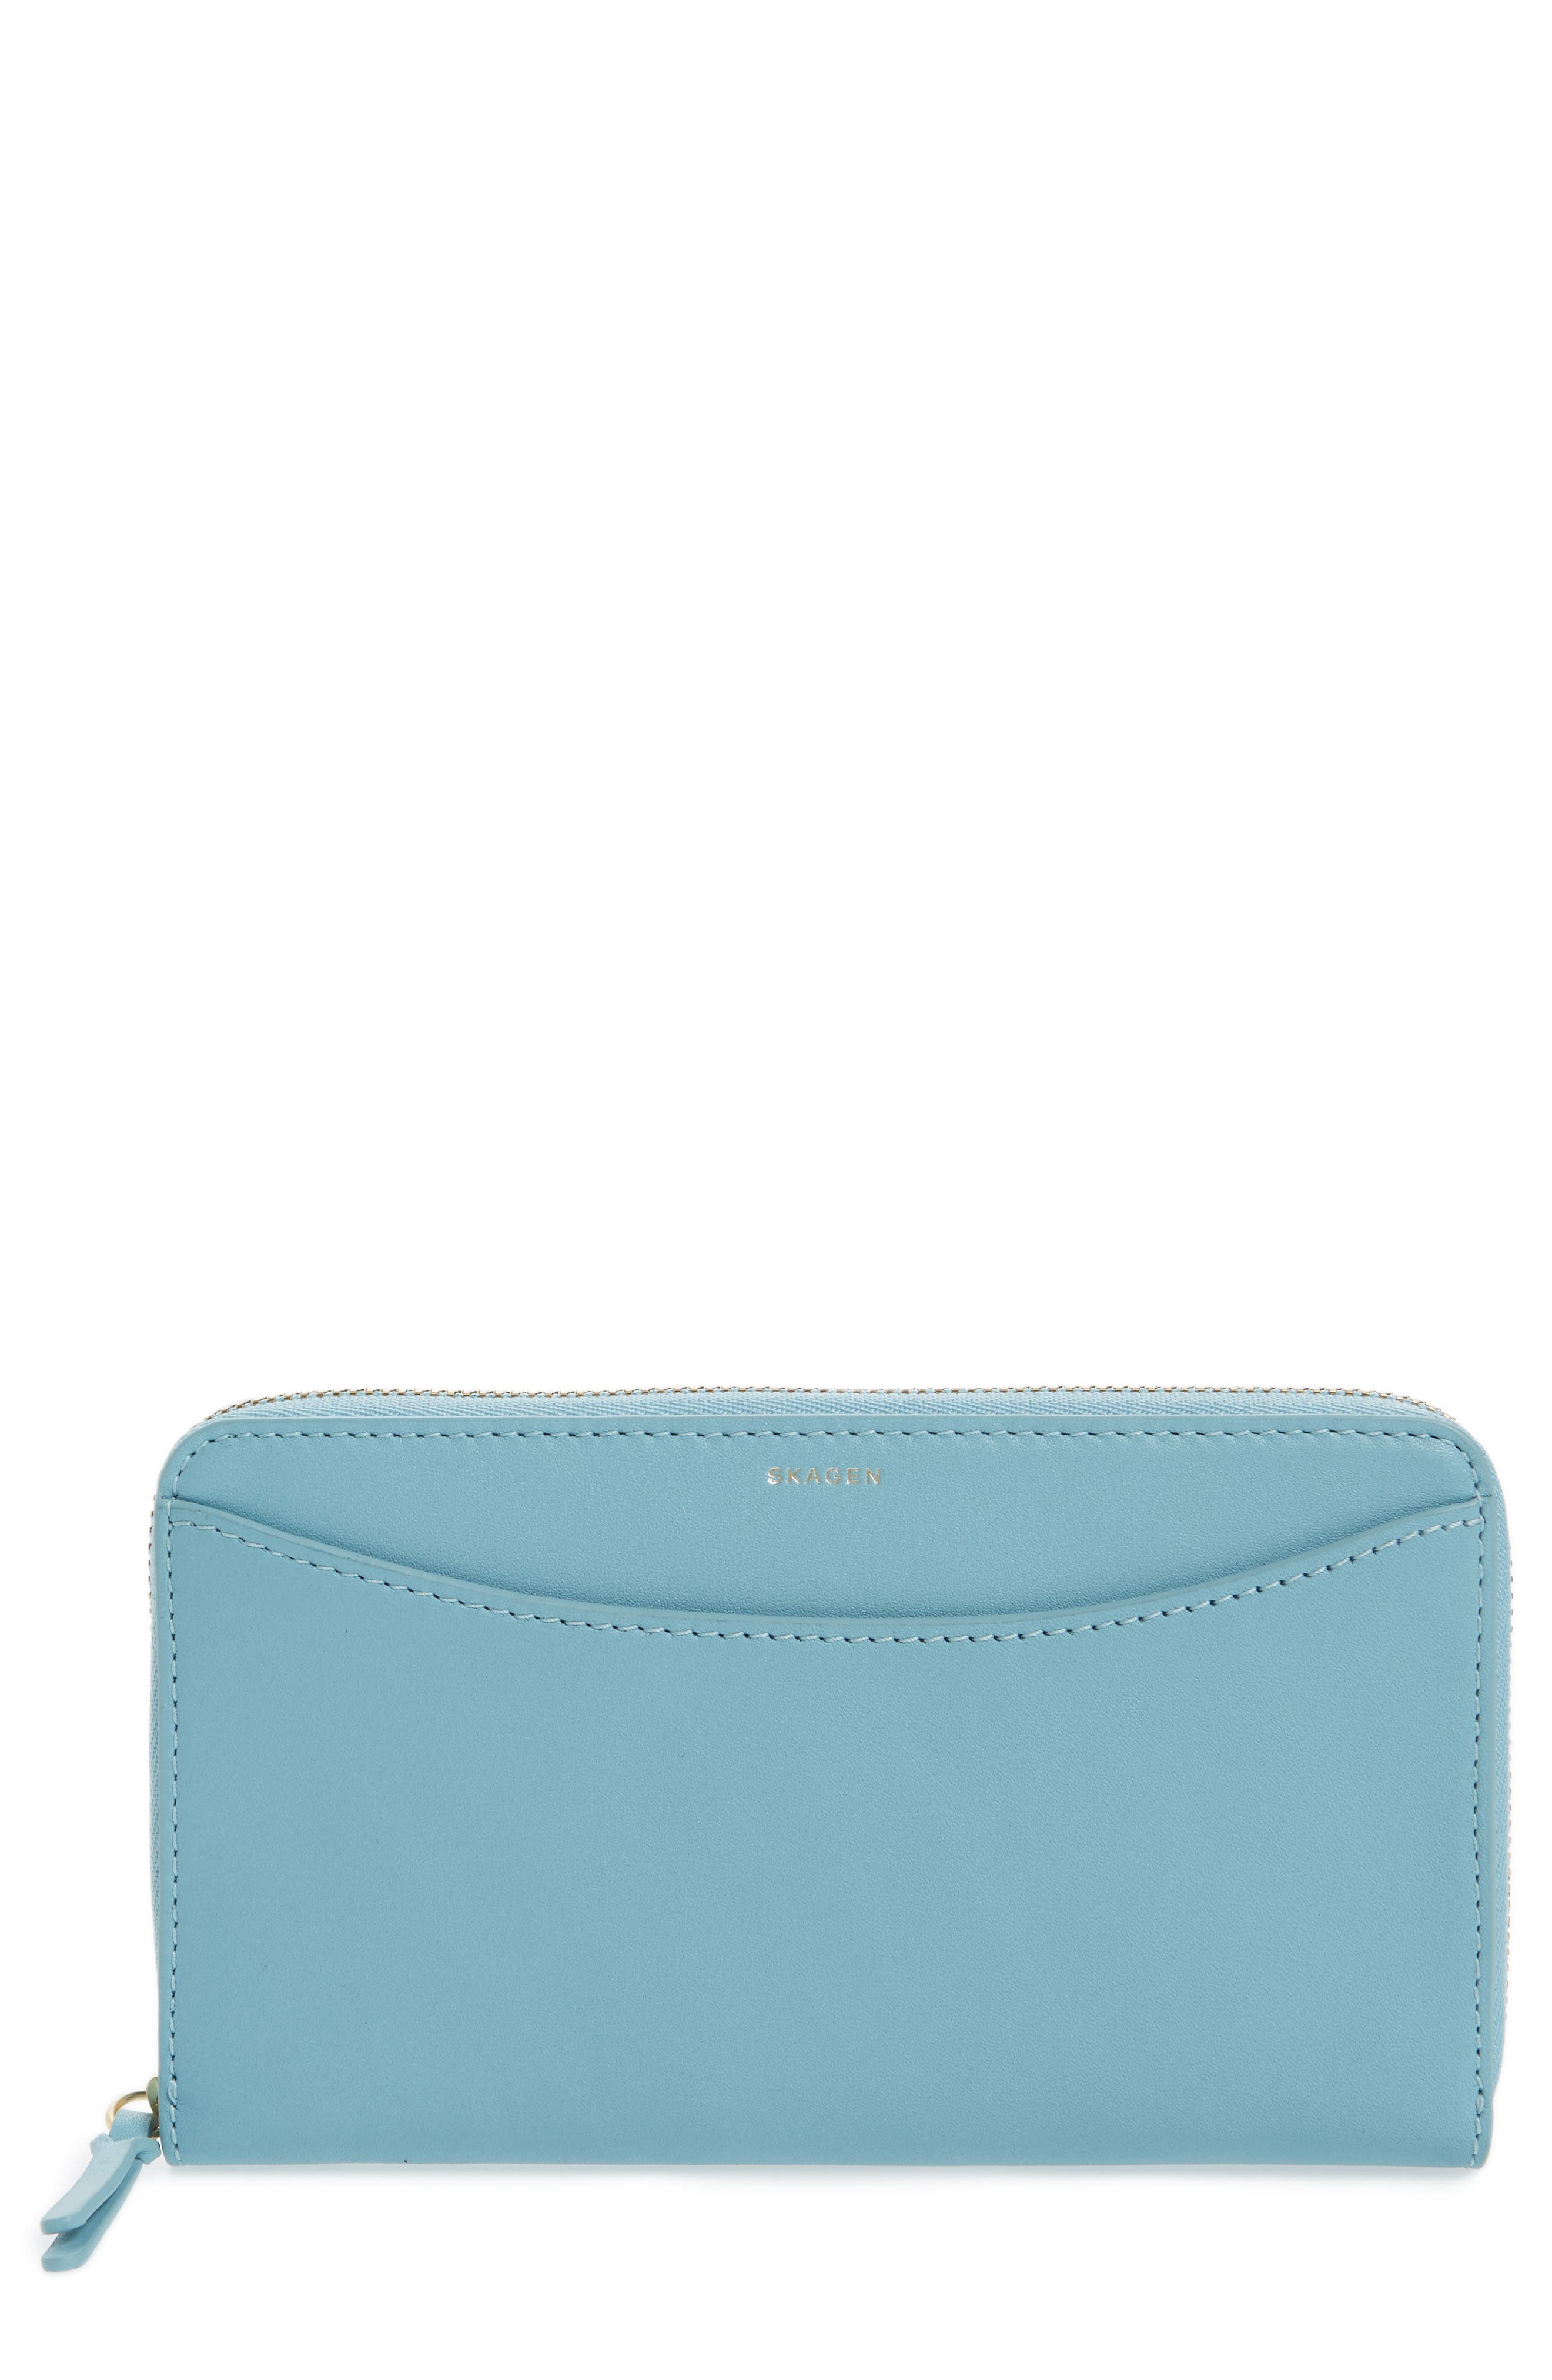 Alternate Image 1 Selected - Skagen Leather Continental Wallet